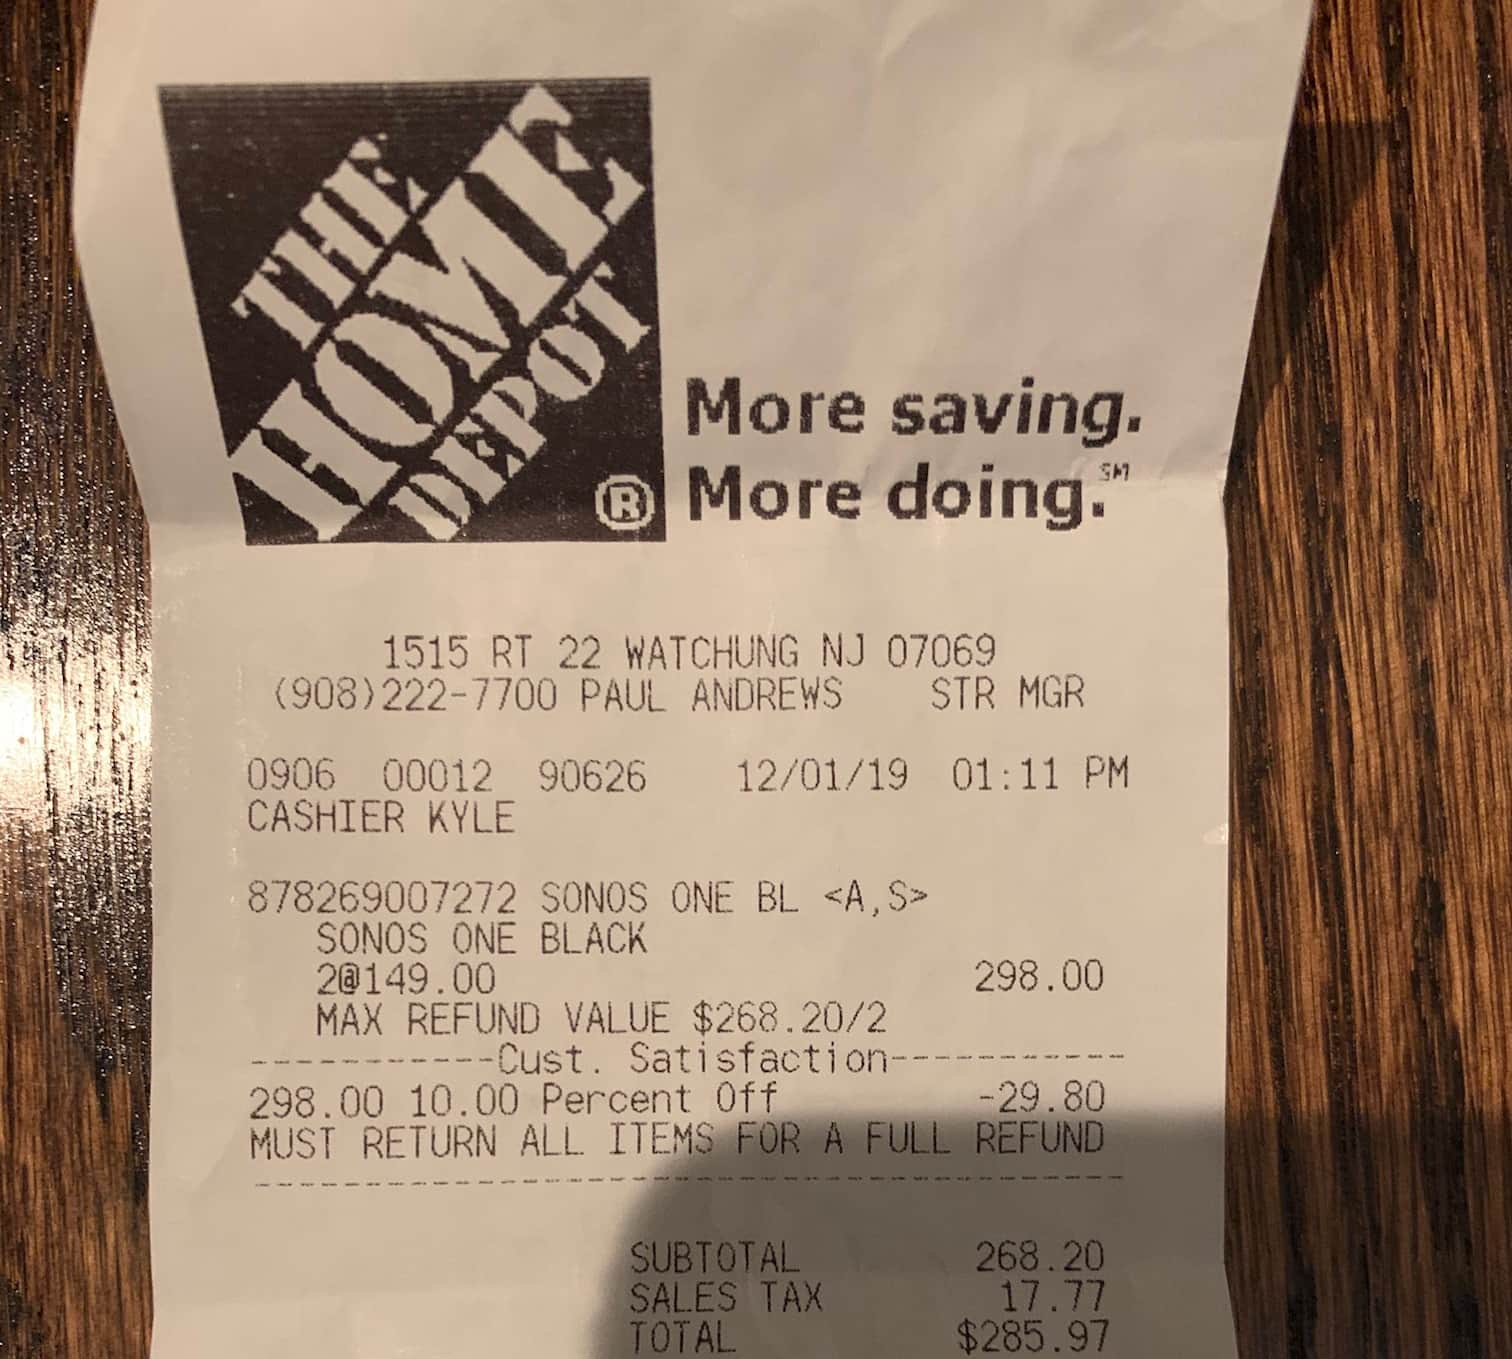 Sonos One Gen 2 - $149 in store only at Home Depot YMMV